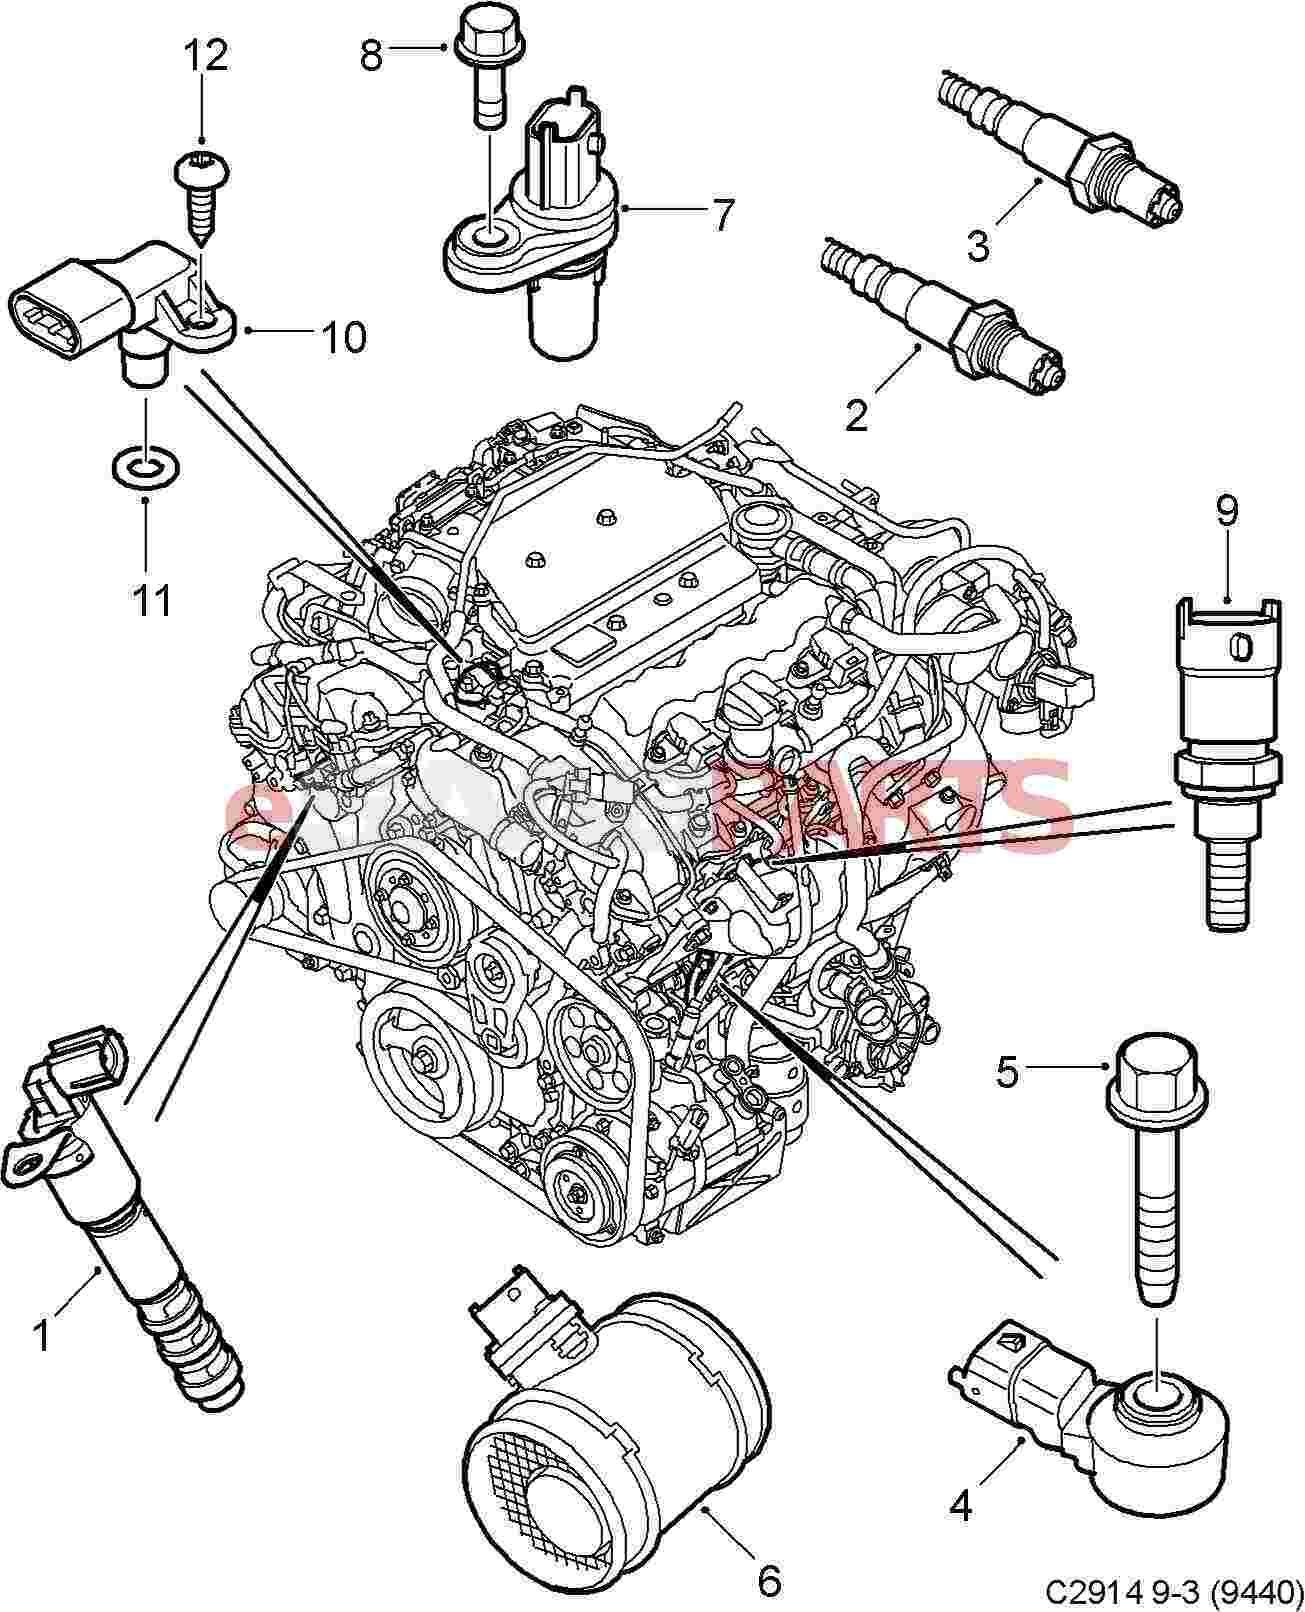 esaabparts com 2006 Saab 9-3 Fuse Box Diagram Saab 9-3 Fuse Box Diagram